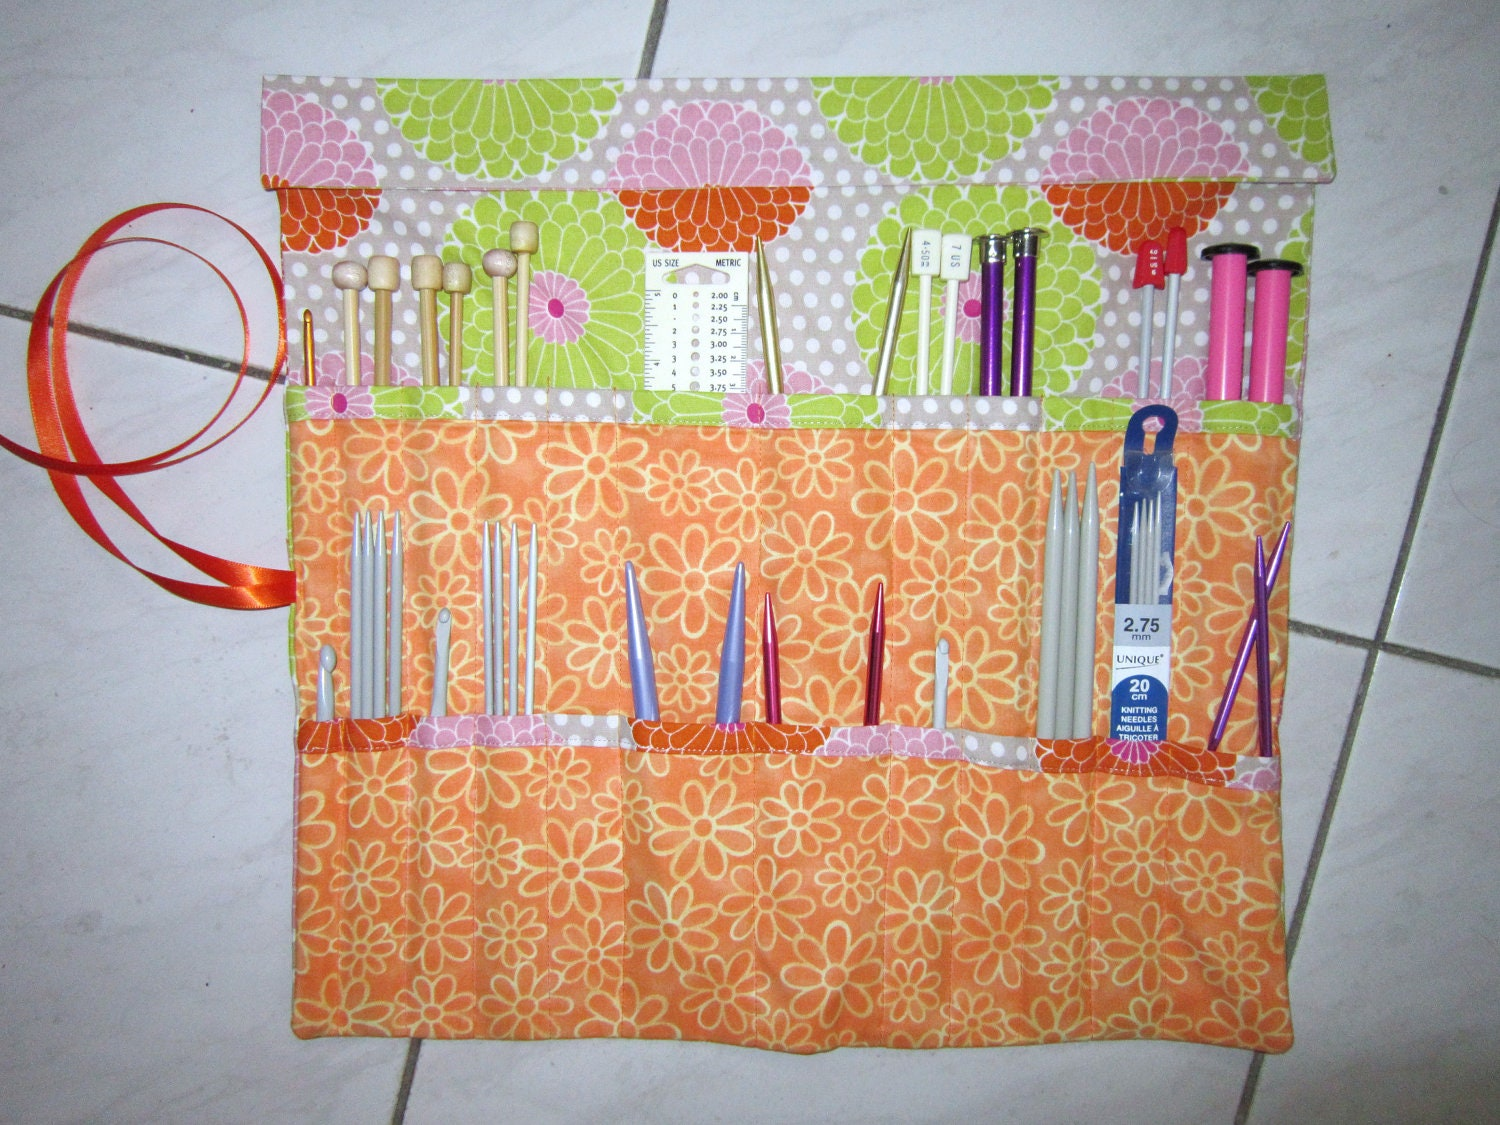 Knitting Pattern Needle Holder : Knitting Needle Case Organizer Knitting Supplies Crochet Case